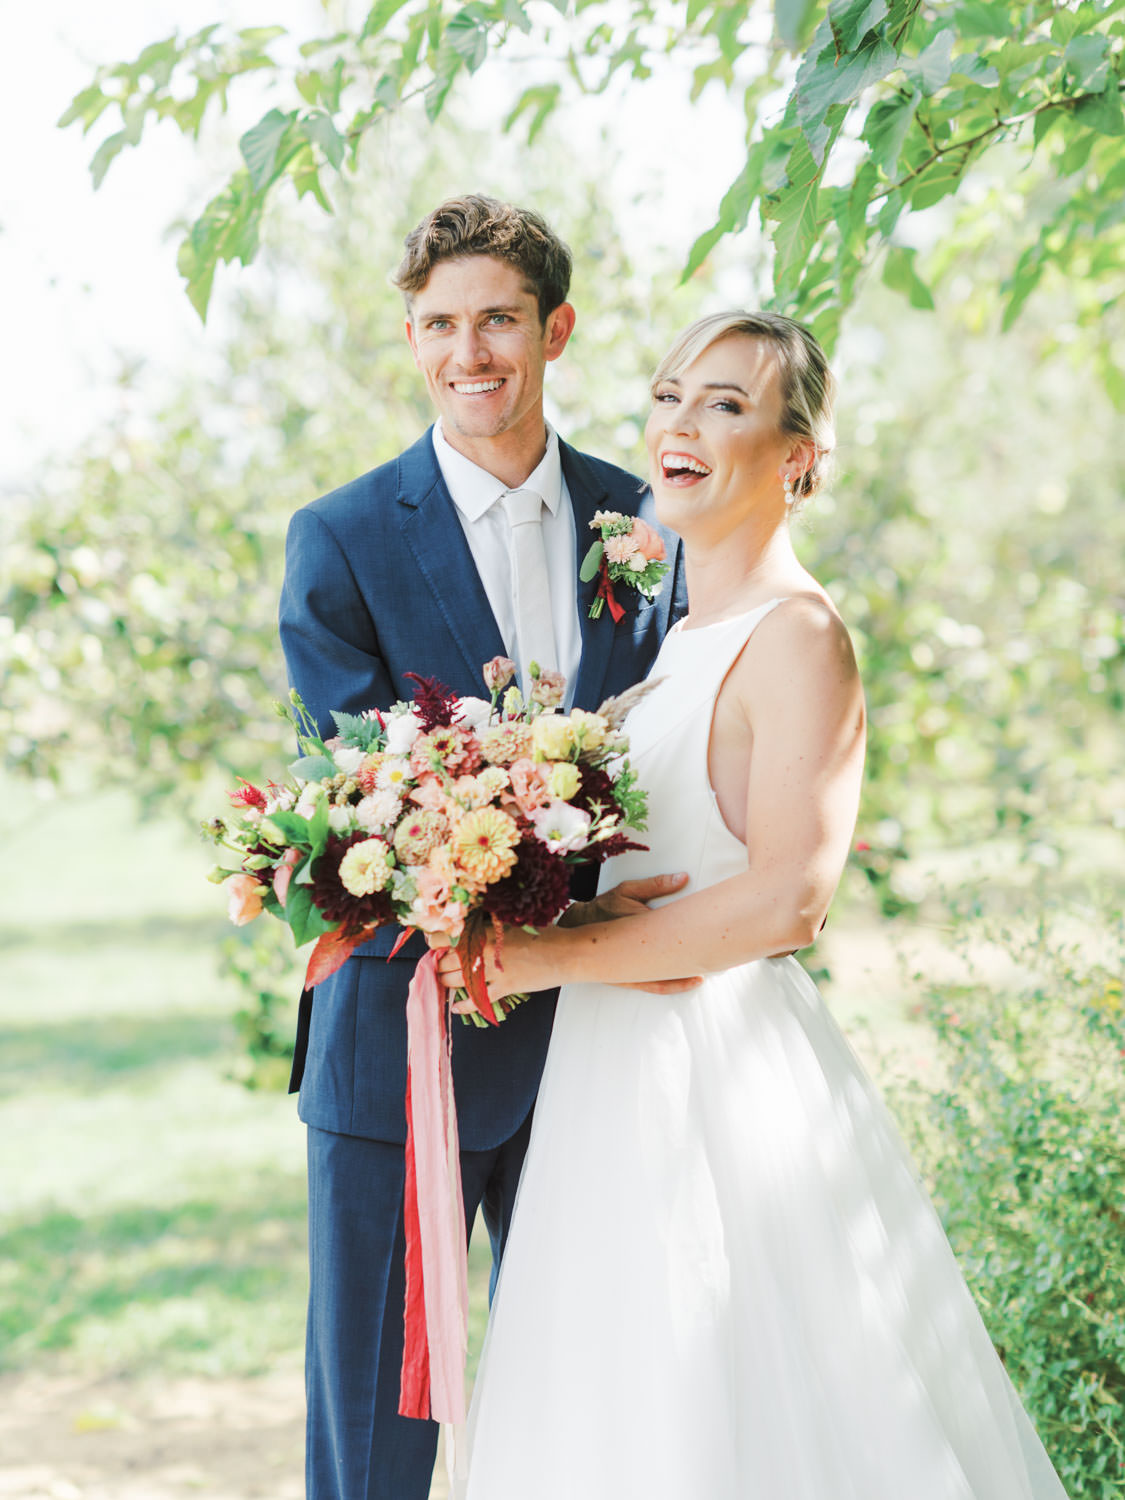 Bride in a classic Mikaella Bridal gown laughing with the groom in a navy linen suit. Bridal bouquet with ivory, peach, wine, blush flowers and mauve, wine, and blush ribbons. Full Belly Farm on Martha Stewart Weddings by film photographer Cavin Elizabeth Photography